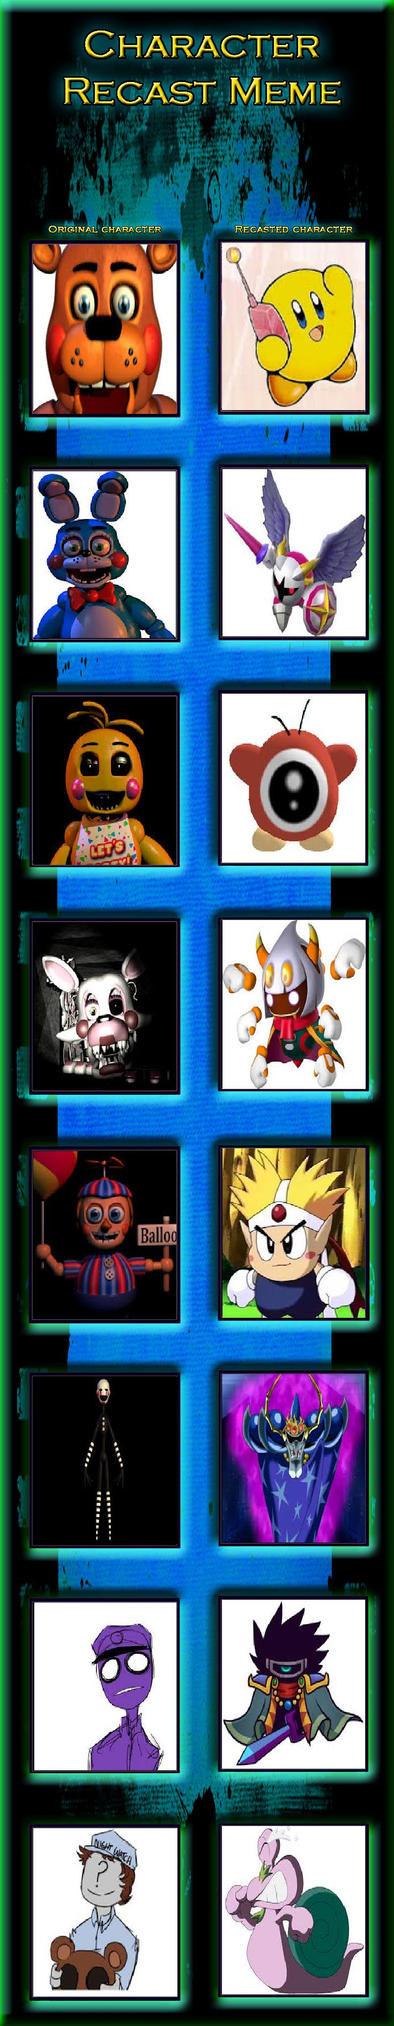 Five Nights At Kirby's Character Recast Meme 2 by magolorandmarx